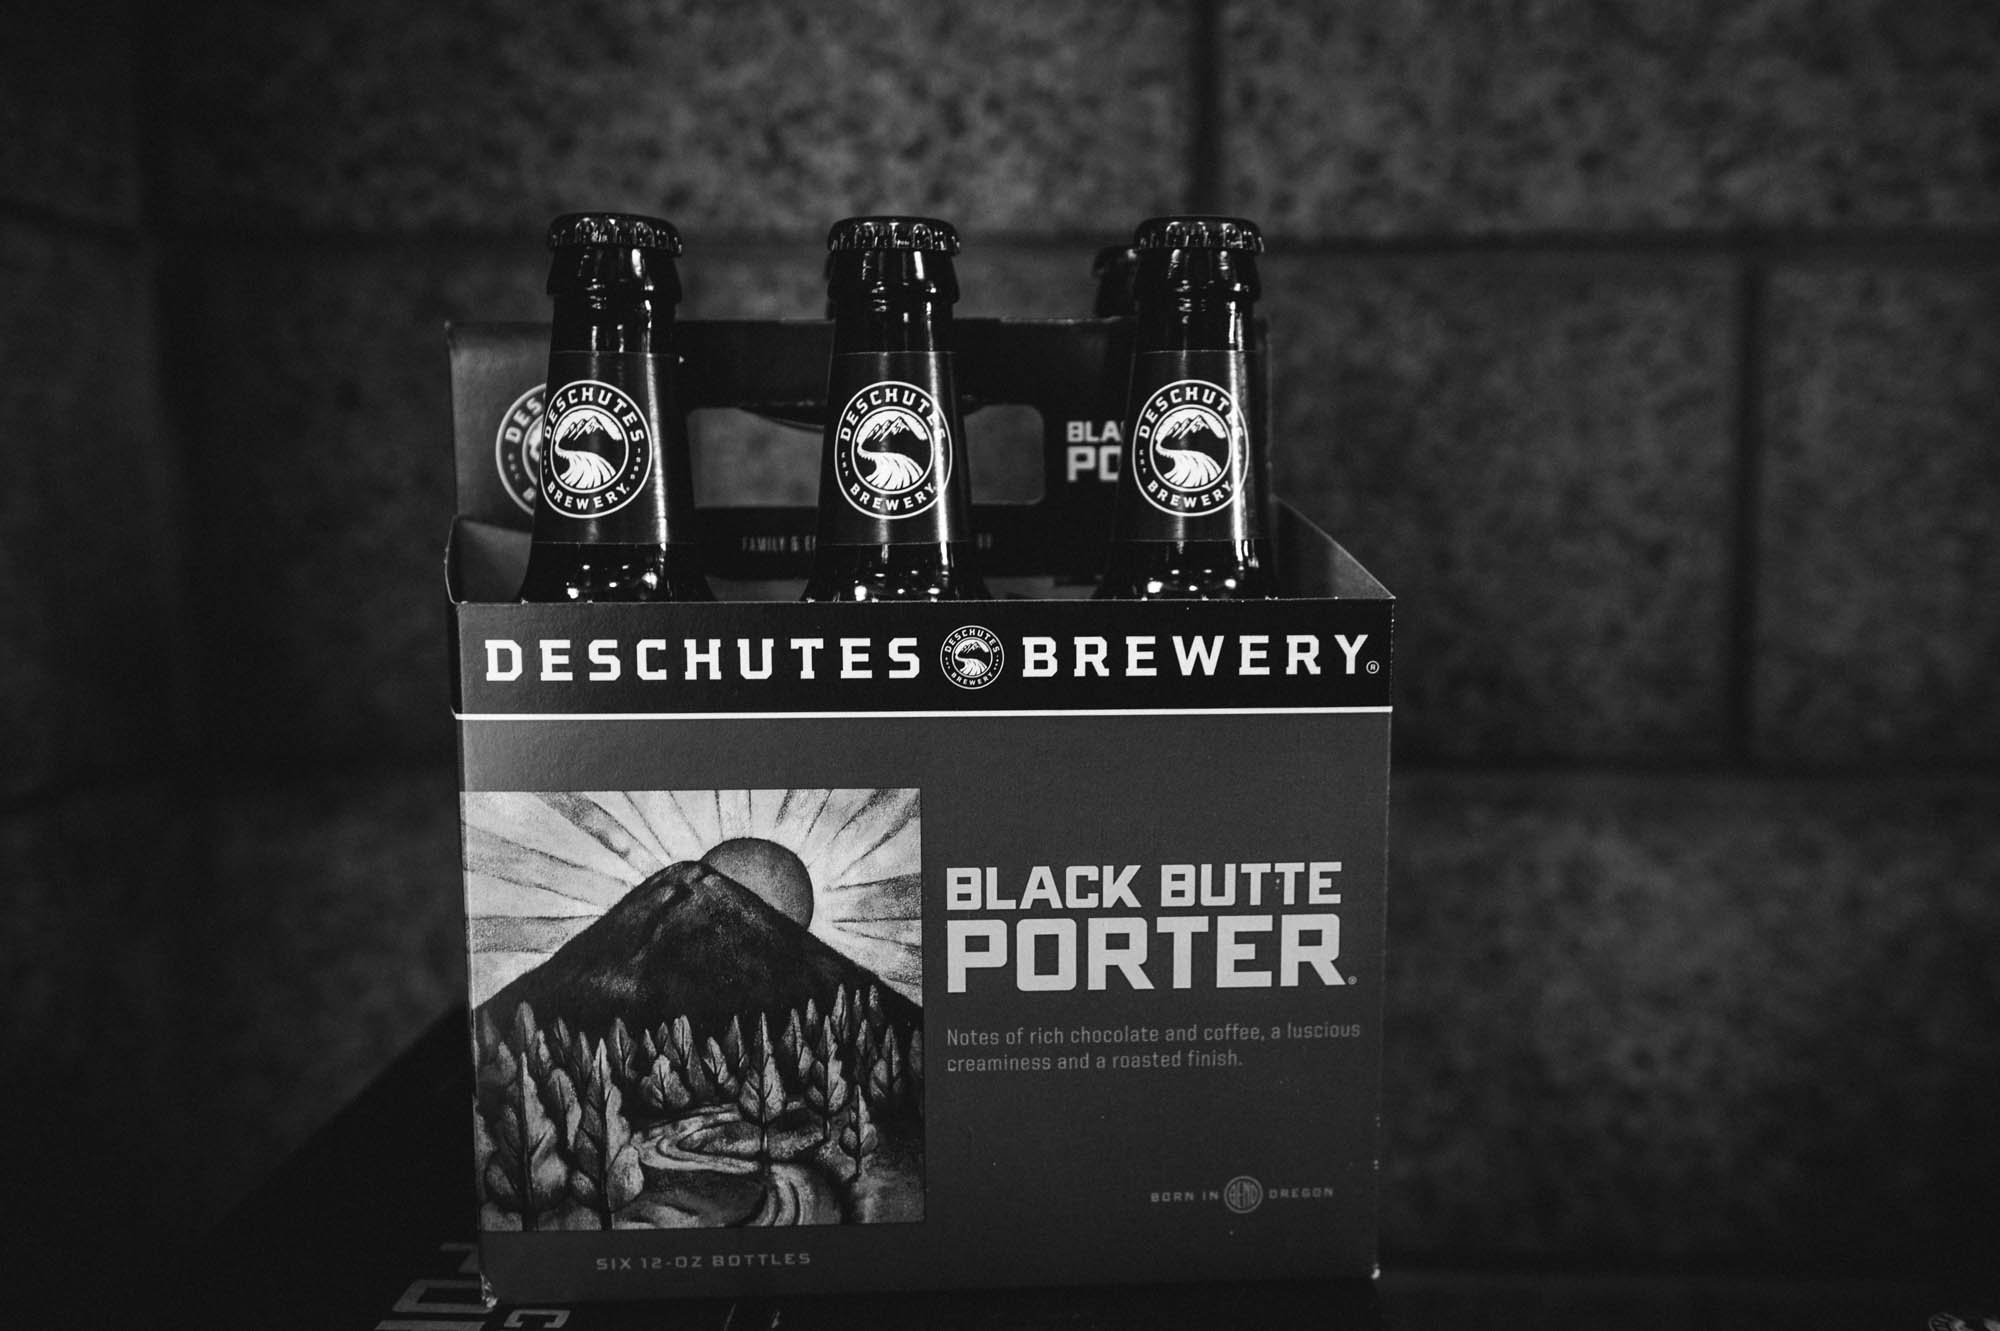 The Black Butte Porter is their flagship beer and it is pretty darn tasty!